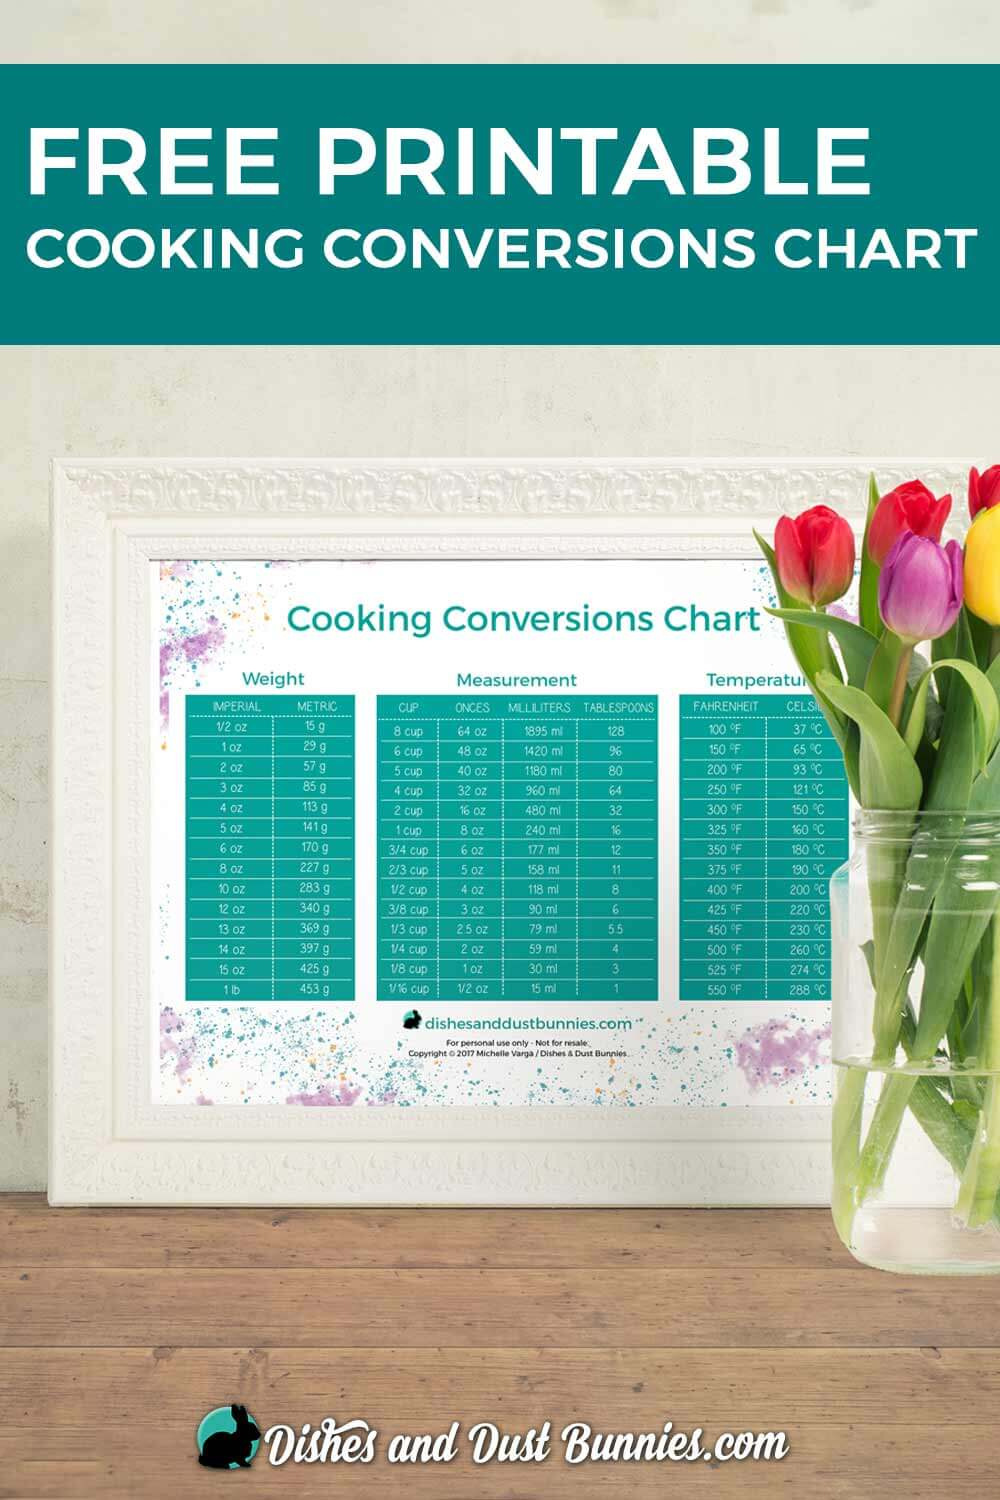 Free Printable Cooking Conversions Chart from dishesanddustbunnies.com